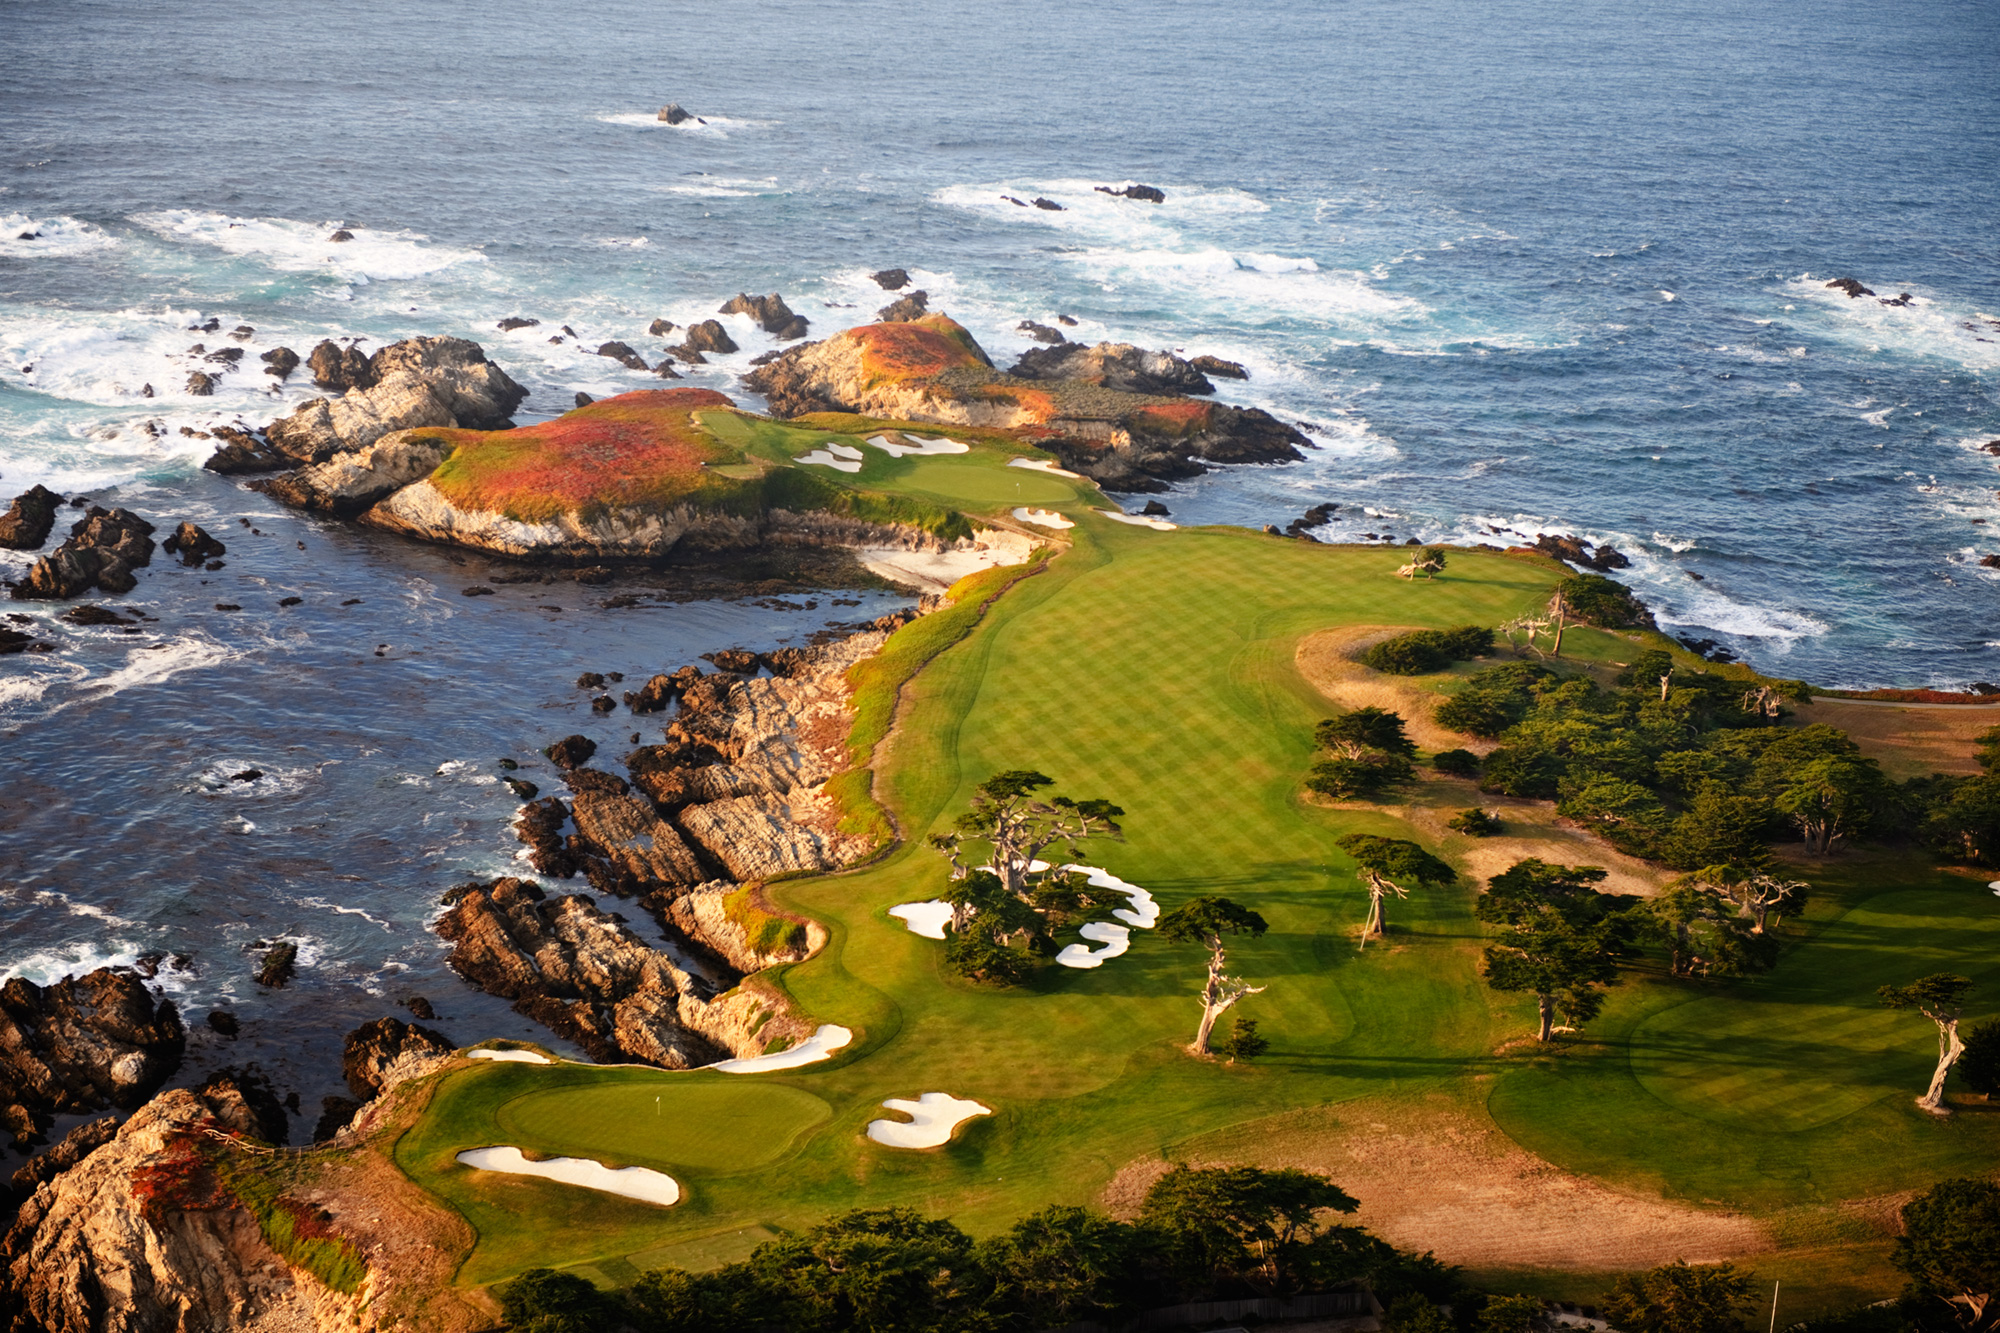 What's your favorite hole you've played and what makes it your top choice?